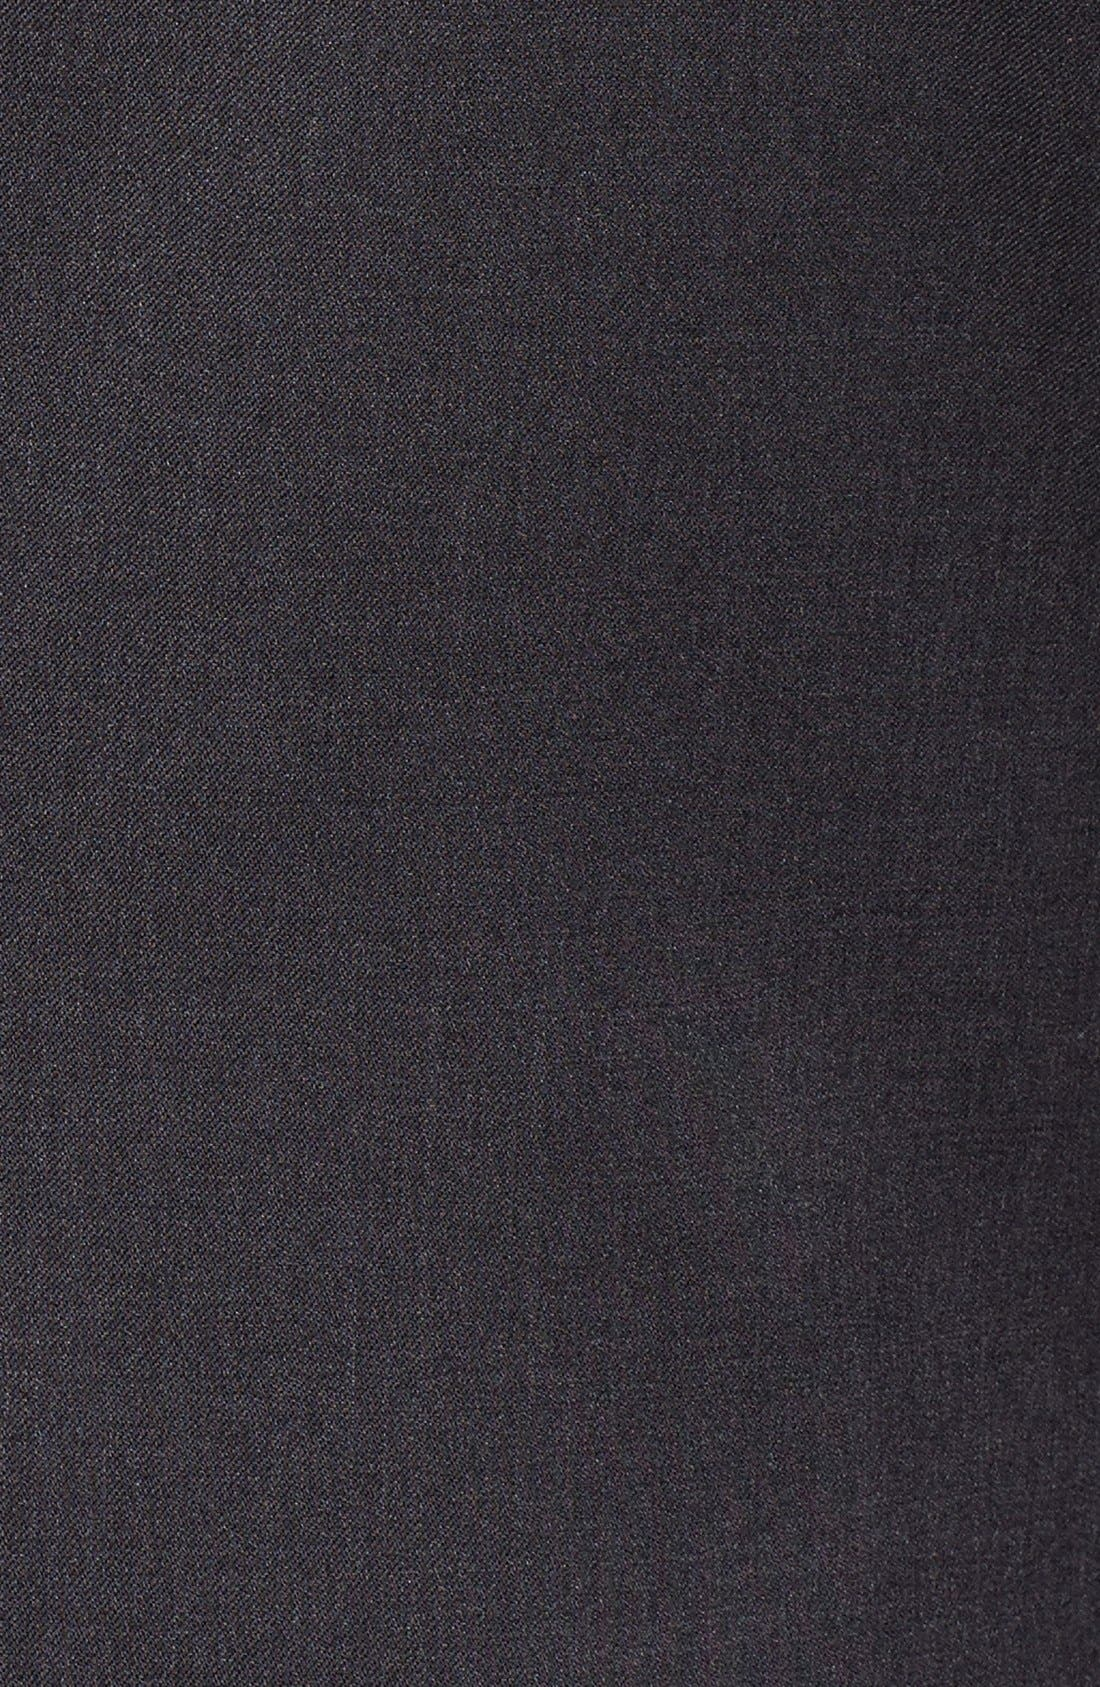 'Ryan/Win' Extra Trim Fit Solid Wool Suit,                             Alternate thumbnail 13, color,                             021